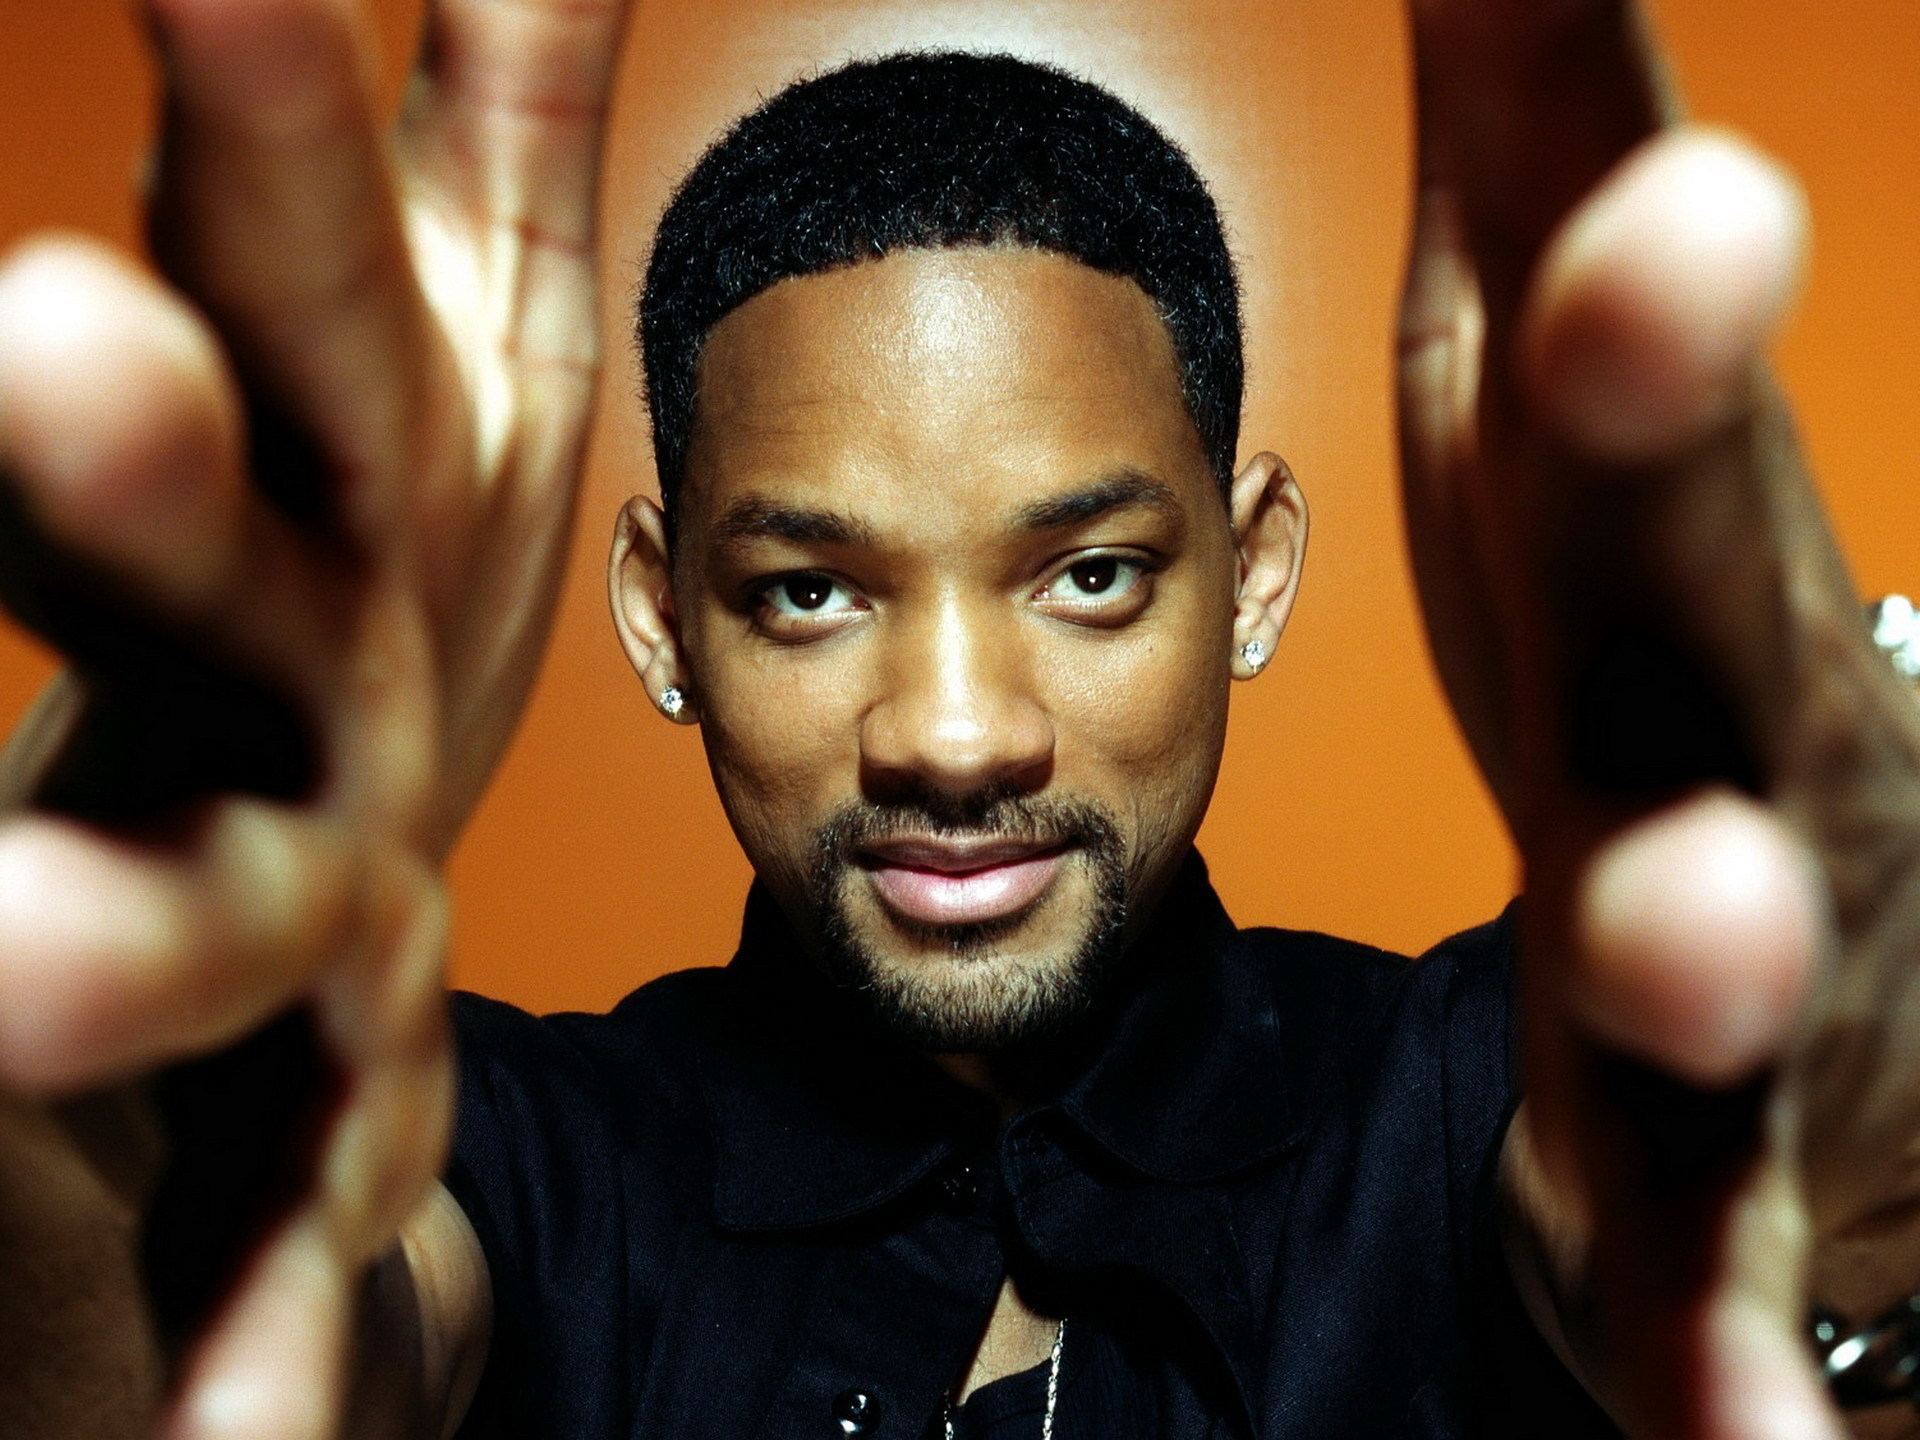 Will Smith HD Wallpaper Background Image 1920x1440 ID416124 1920x1440